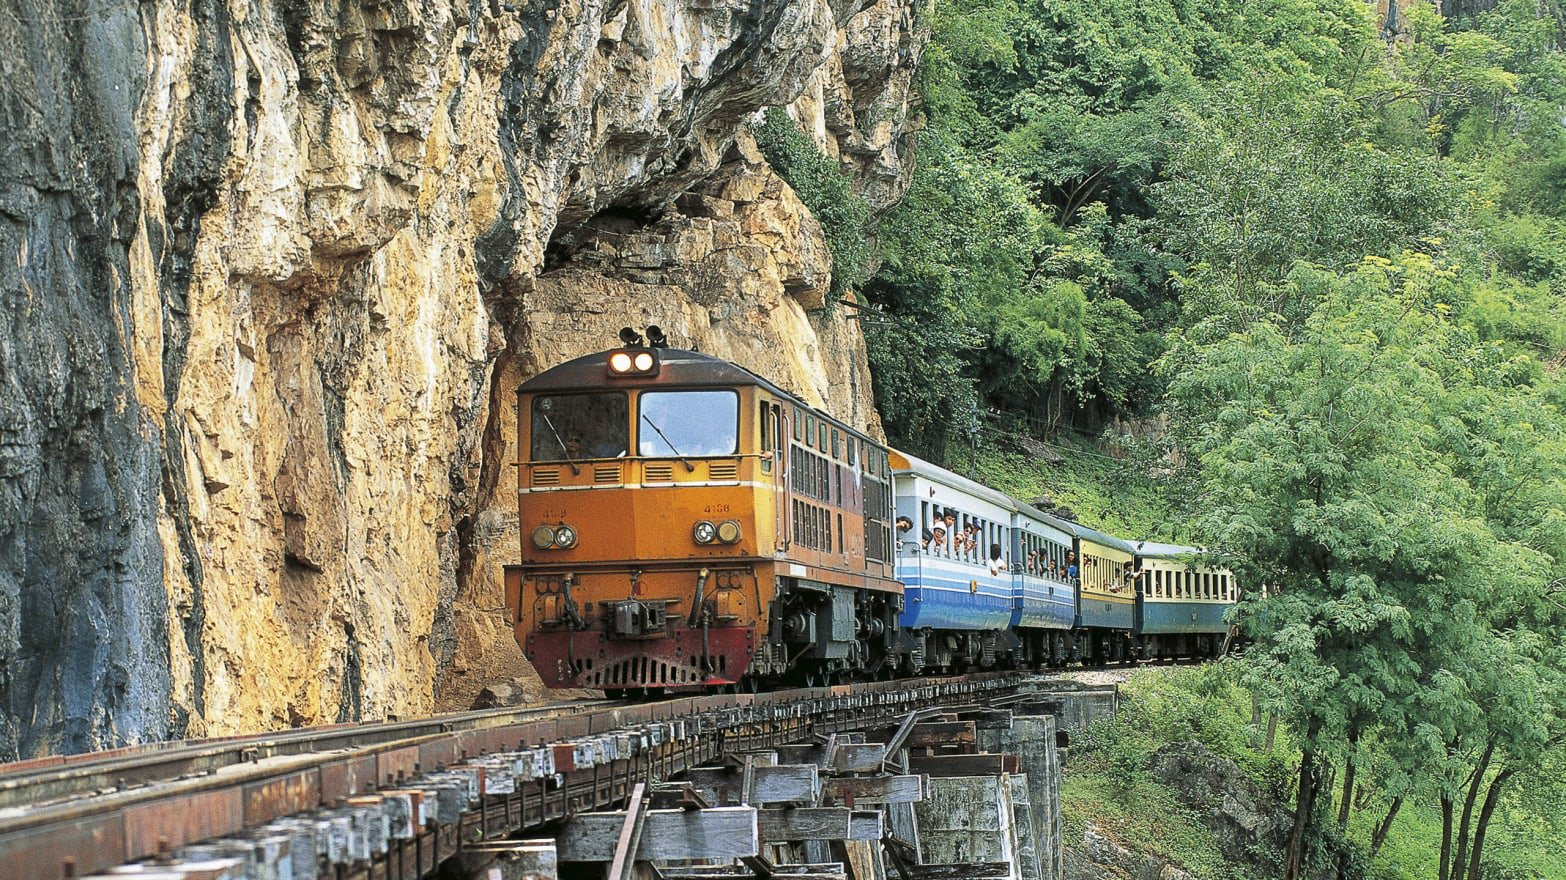 Take a historic ride on Death Railway Train passing over original wooden viaduct constructed by Allied POWs